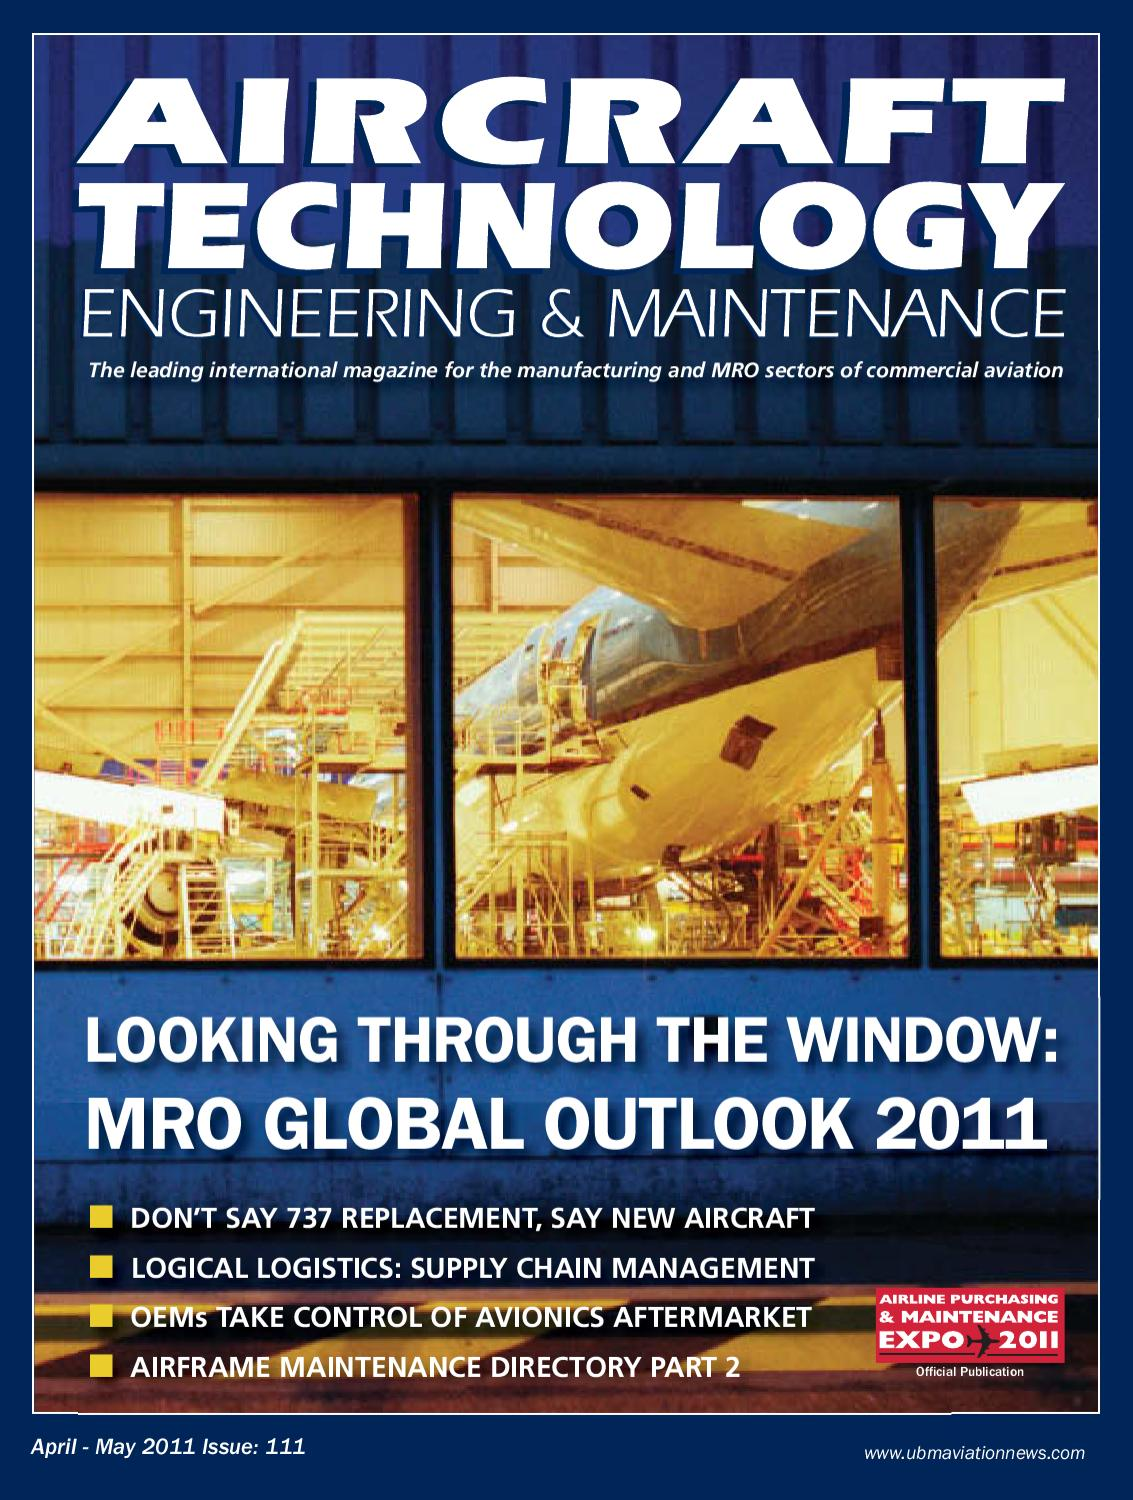 Aircraft Technology Engineering & Maintenance issue 111 by UBM Aviation  Publications - issuu